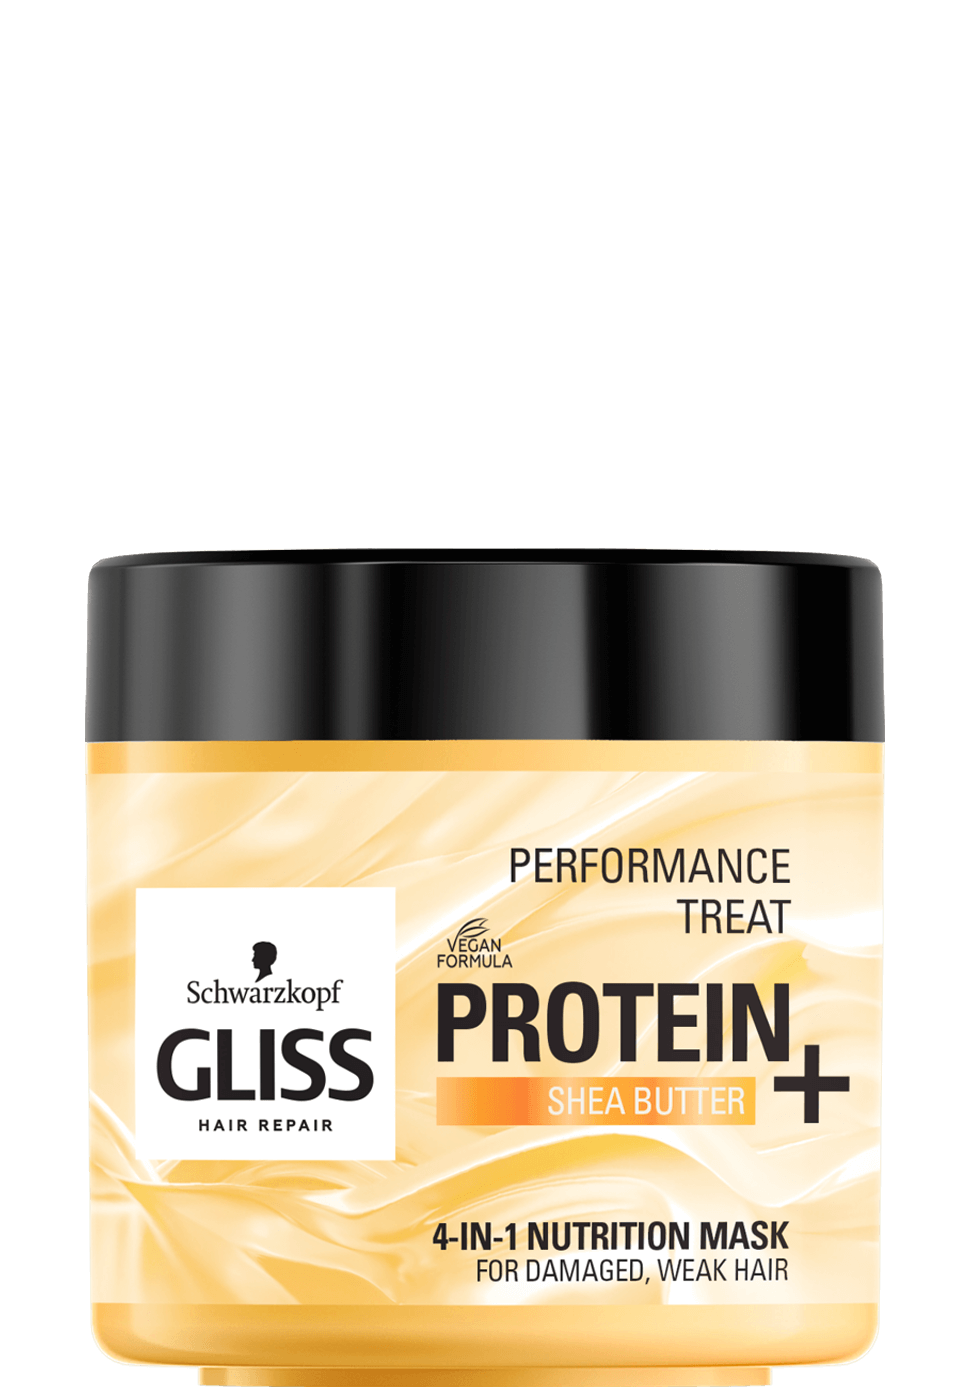 Gliss_JAR_400_4in1_Nutrition_Shea_round_970X1400